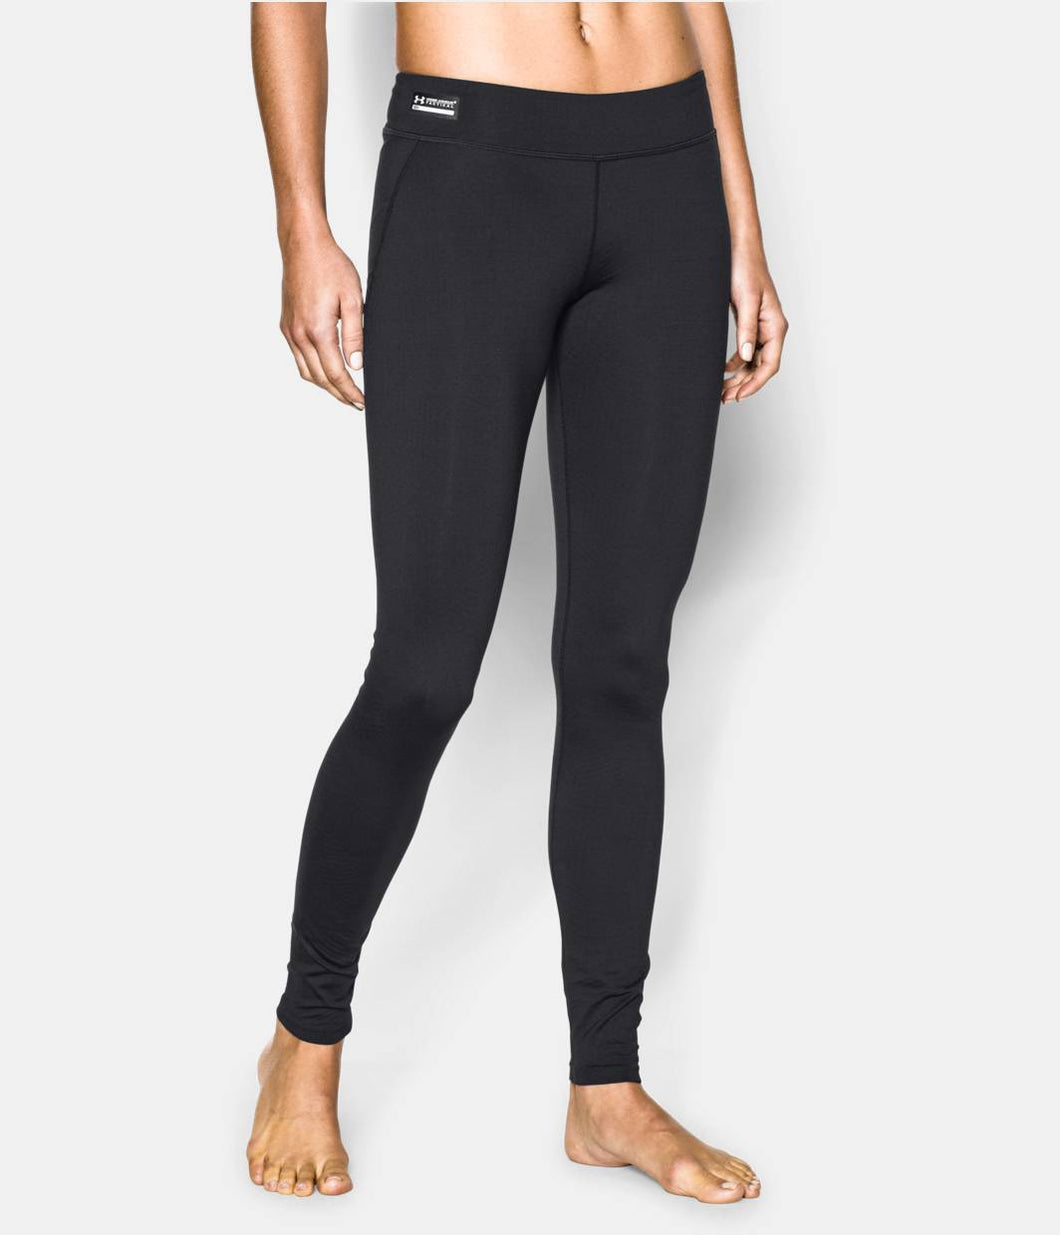 Under Armour 1244398 ColdGear Infrared Tactical Women's Tactical Leggings